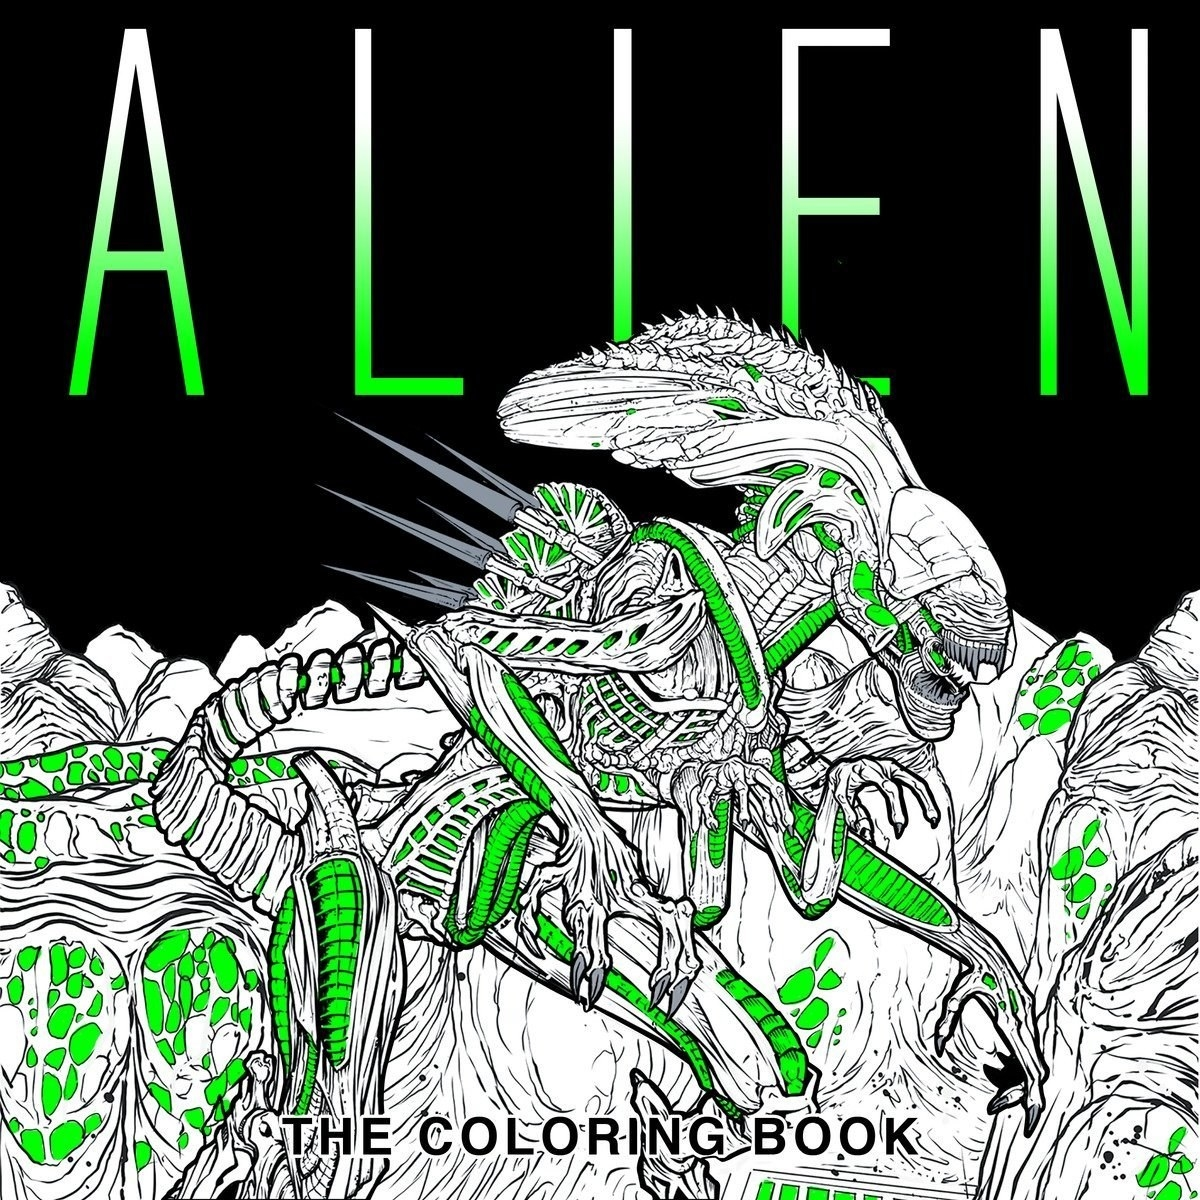 The cover of the Alien colouring book